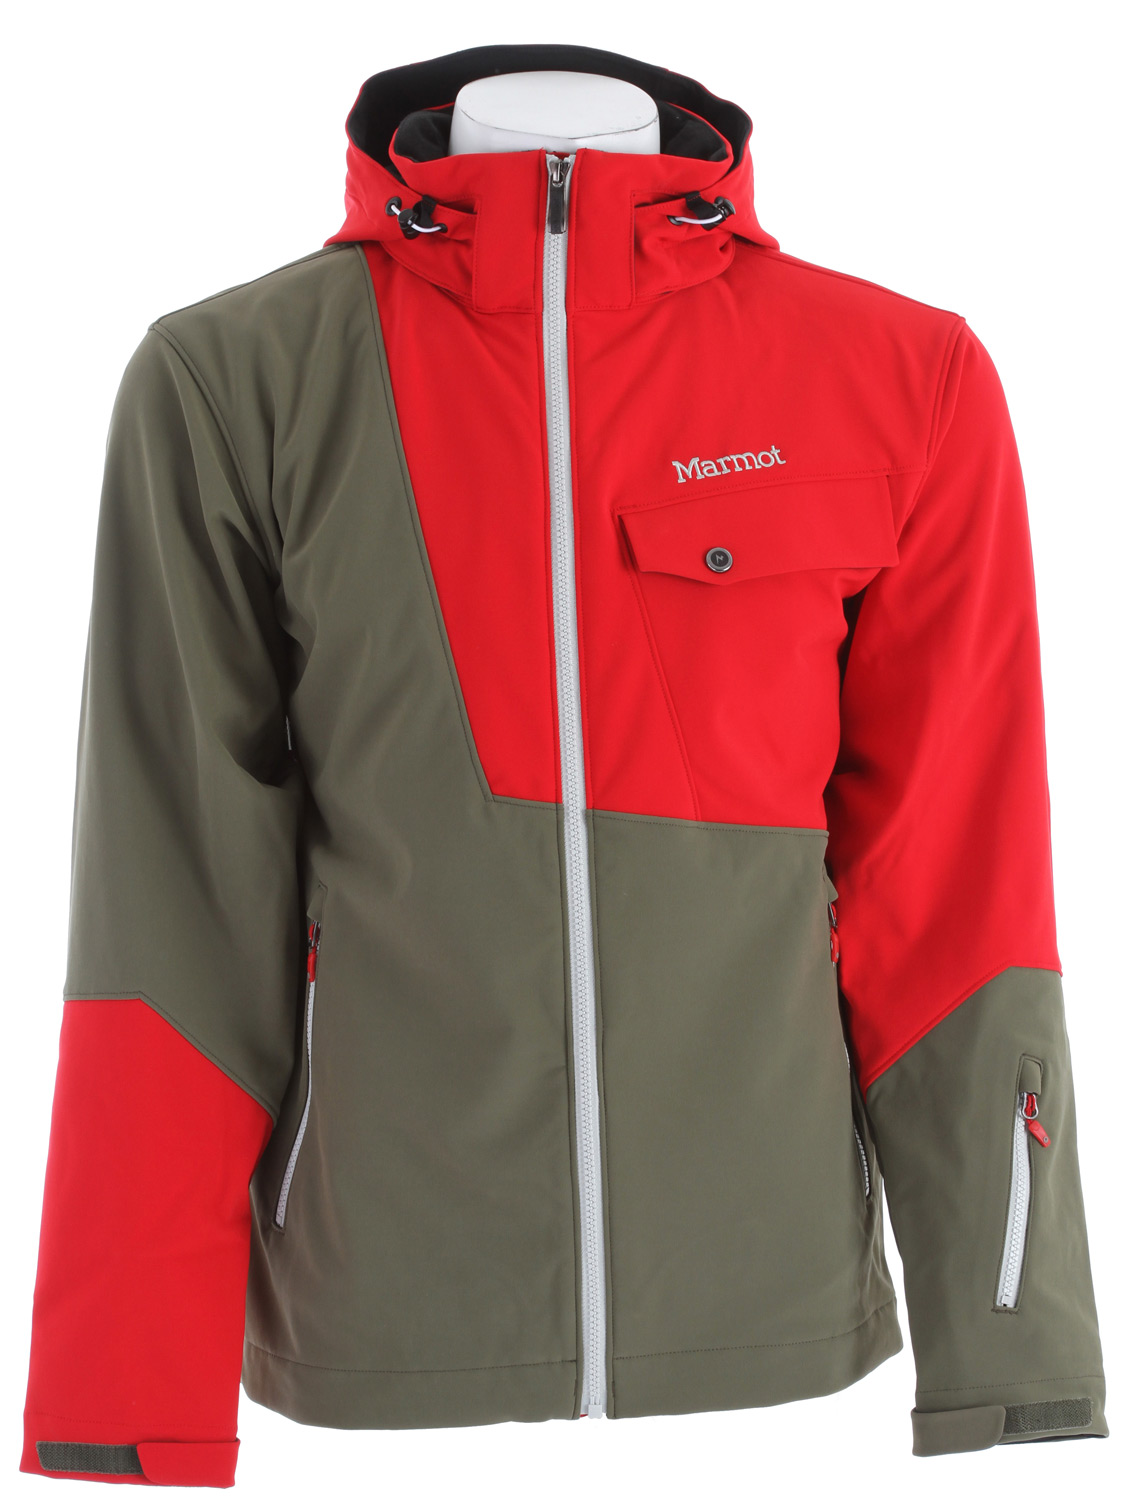 "Ski Key Features of the Marmot Erial Ski Jacket: Weight: 2 lb 4 oz (1021g) Materials: Softshell Bonded 88% Nylon/ 12% Elastane 8.1 oz/ yd Marmot M1 Softshell Windproof, Waterproof and Breathable 4-way Stretch Fabric Zip-off Storm Hood with Laminated Brim Zippered Handwarmer Pockets Flapped Chest Pocket with Zipper Zippered Waist Pass Pocket Zip-off Powder Skirt Zippered Sunglass Pocket Mesh Goggle Pocket Elastic Draw Cord Hem DriClime Lined Collar and Chin Guard Adjustable Velcro Cuff 29"" Center Back Length for Size Medium - $204.95"